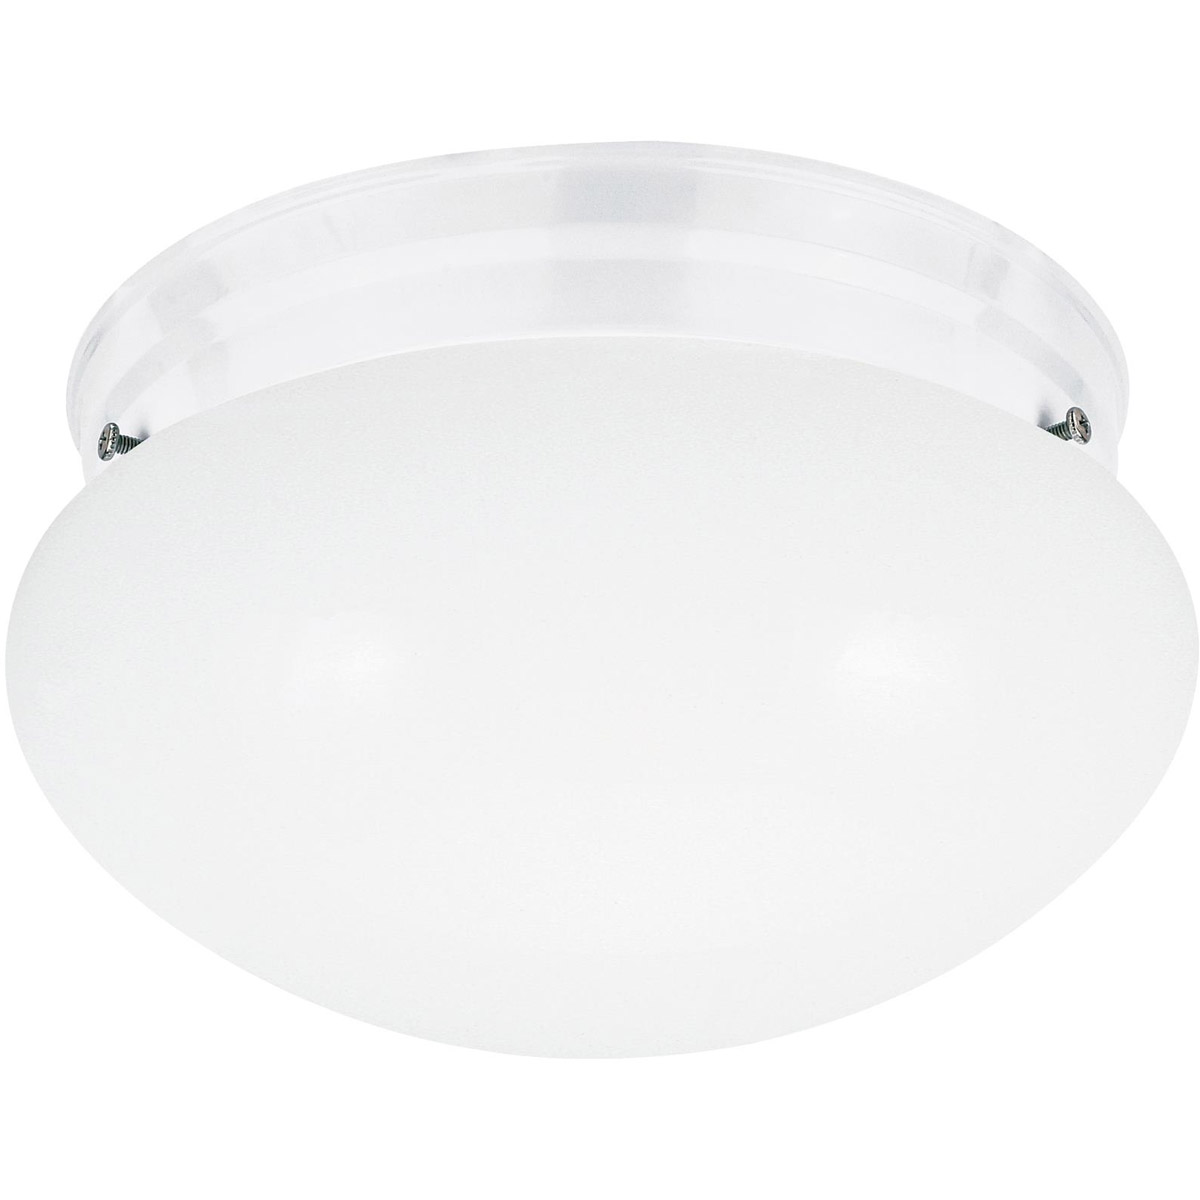 Sea Gull Lighting Webster 1 Light Flush Mount in White 5326-15